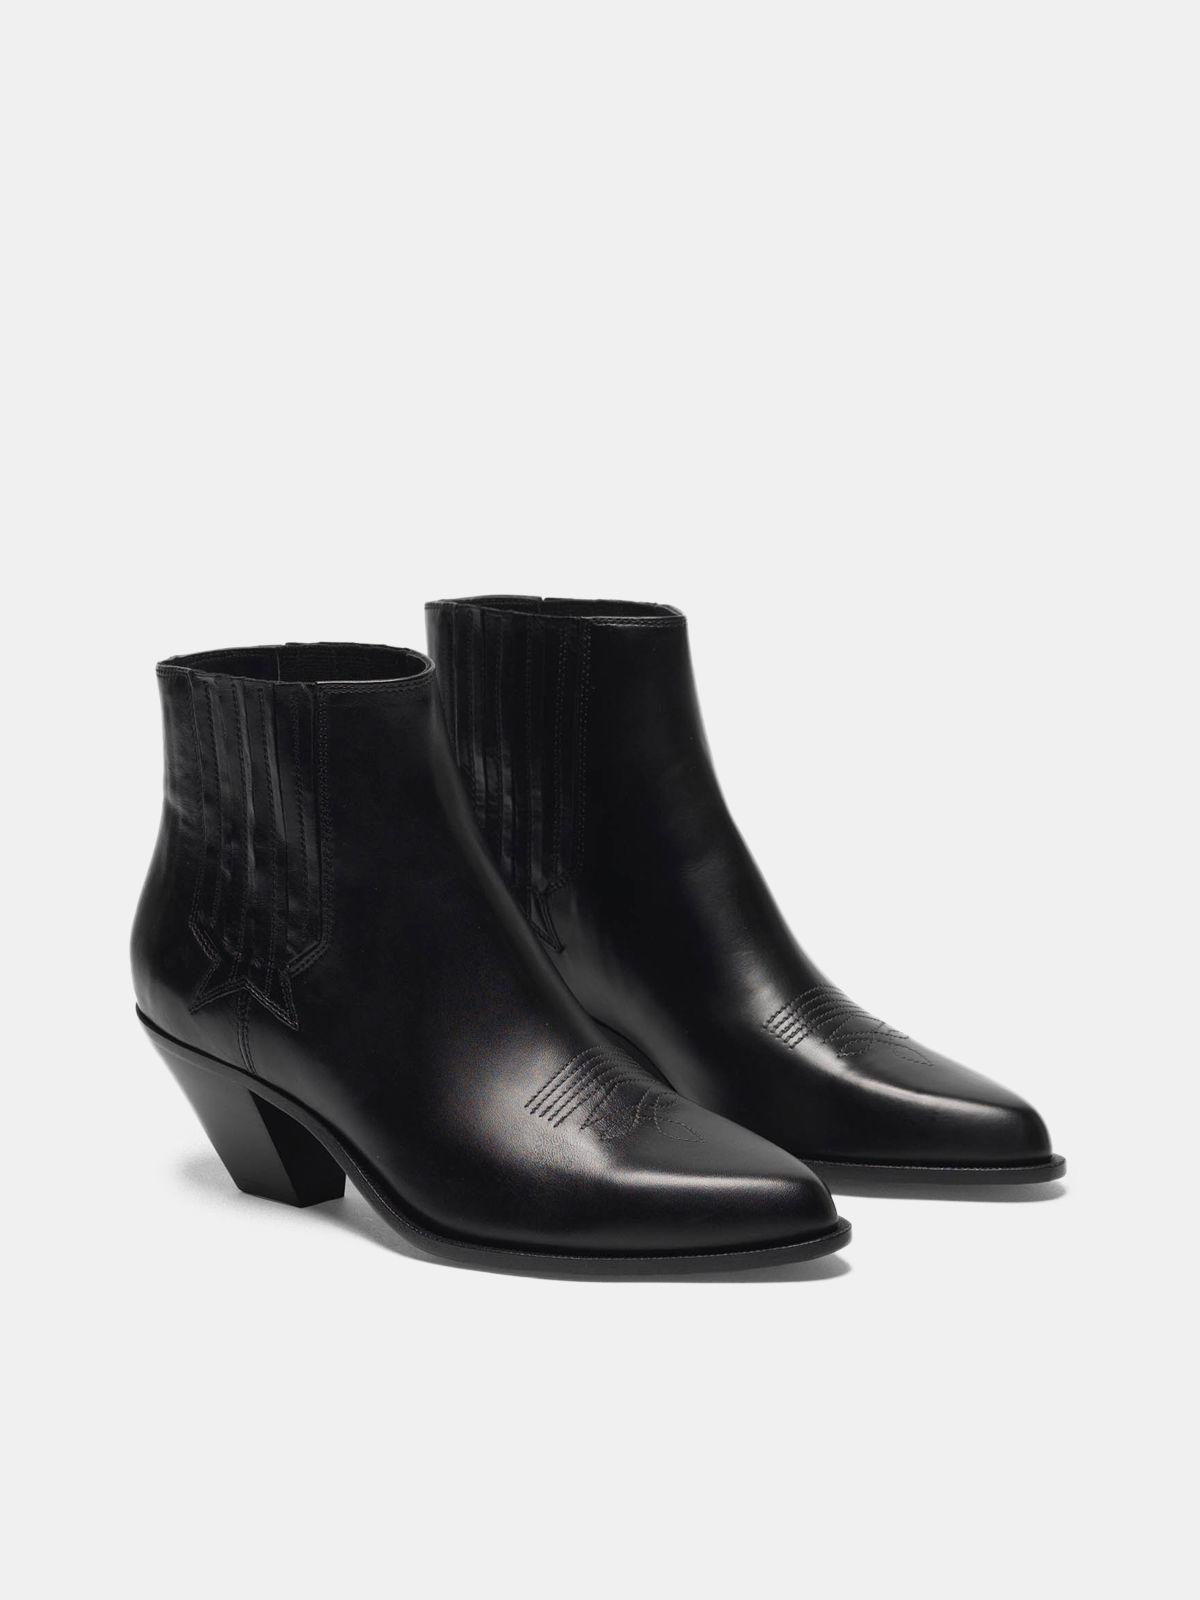 Sunset ankle boots in black leather 2